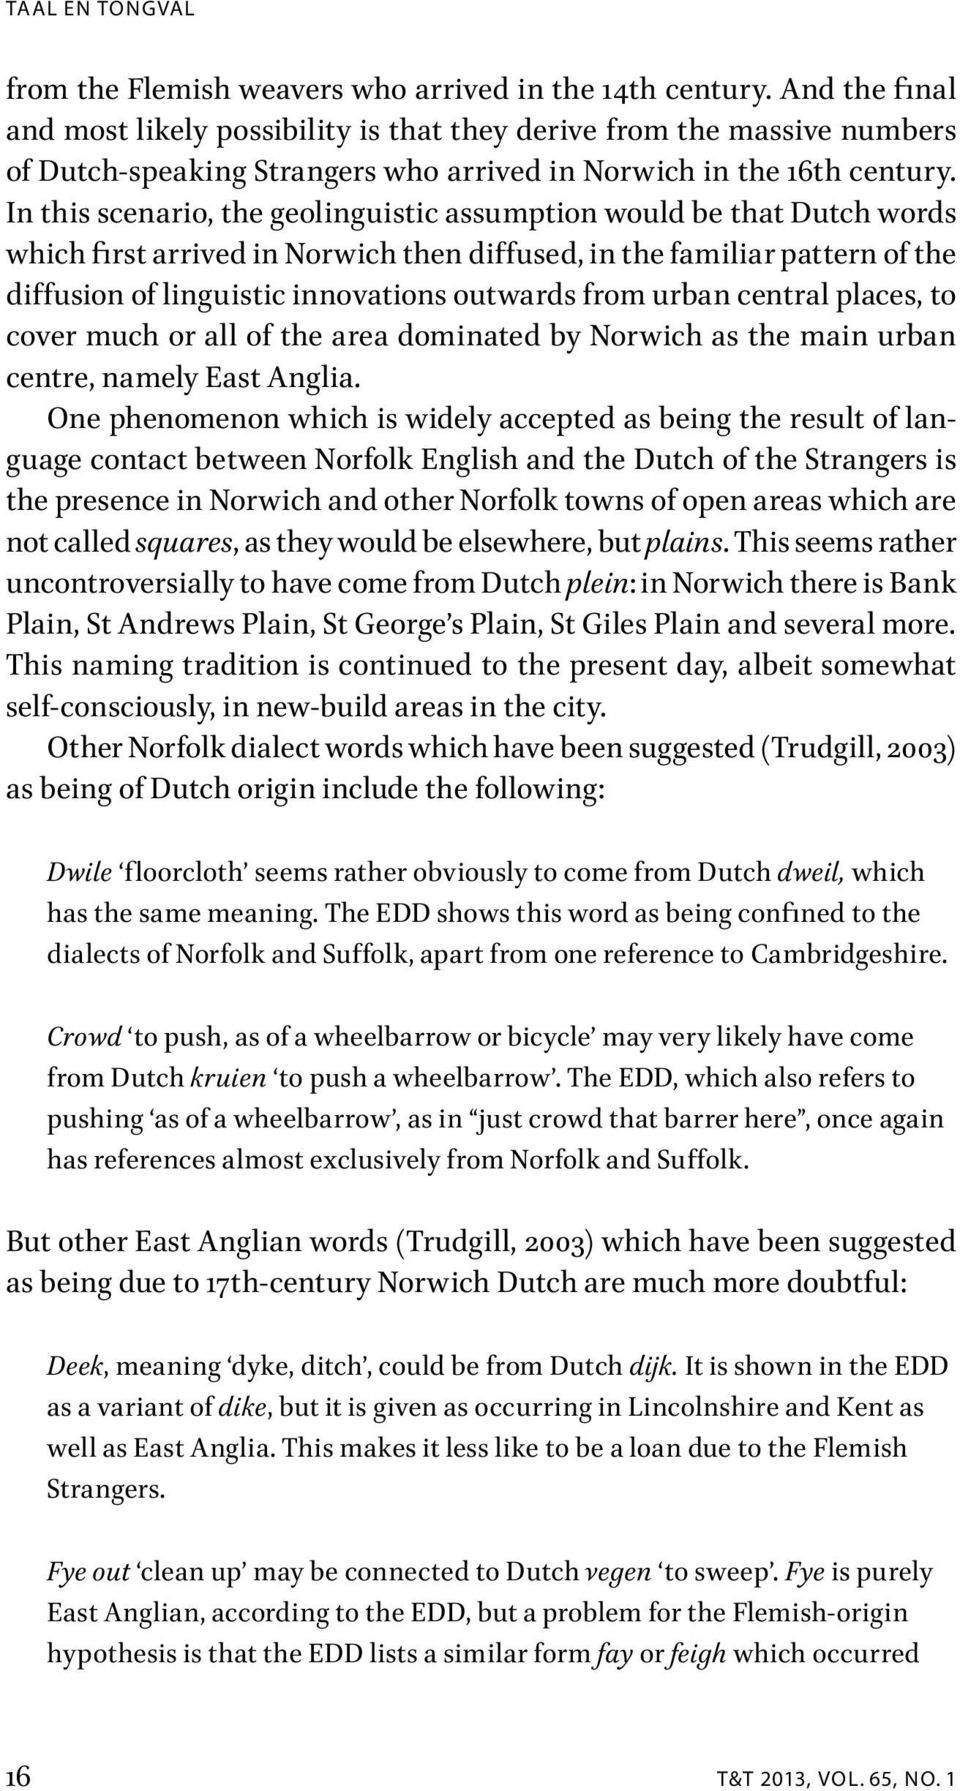 In this scenario, the geolinguistic assumption would be that Dutch words which first arrived in Norwich then diffused, in the familiar pattern of the diffusion of linguistic innovations outwards from